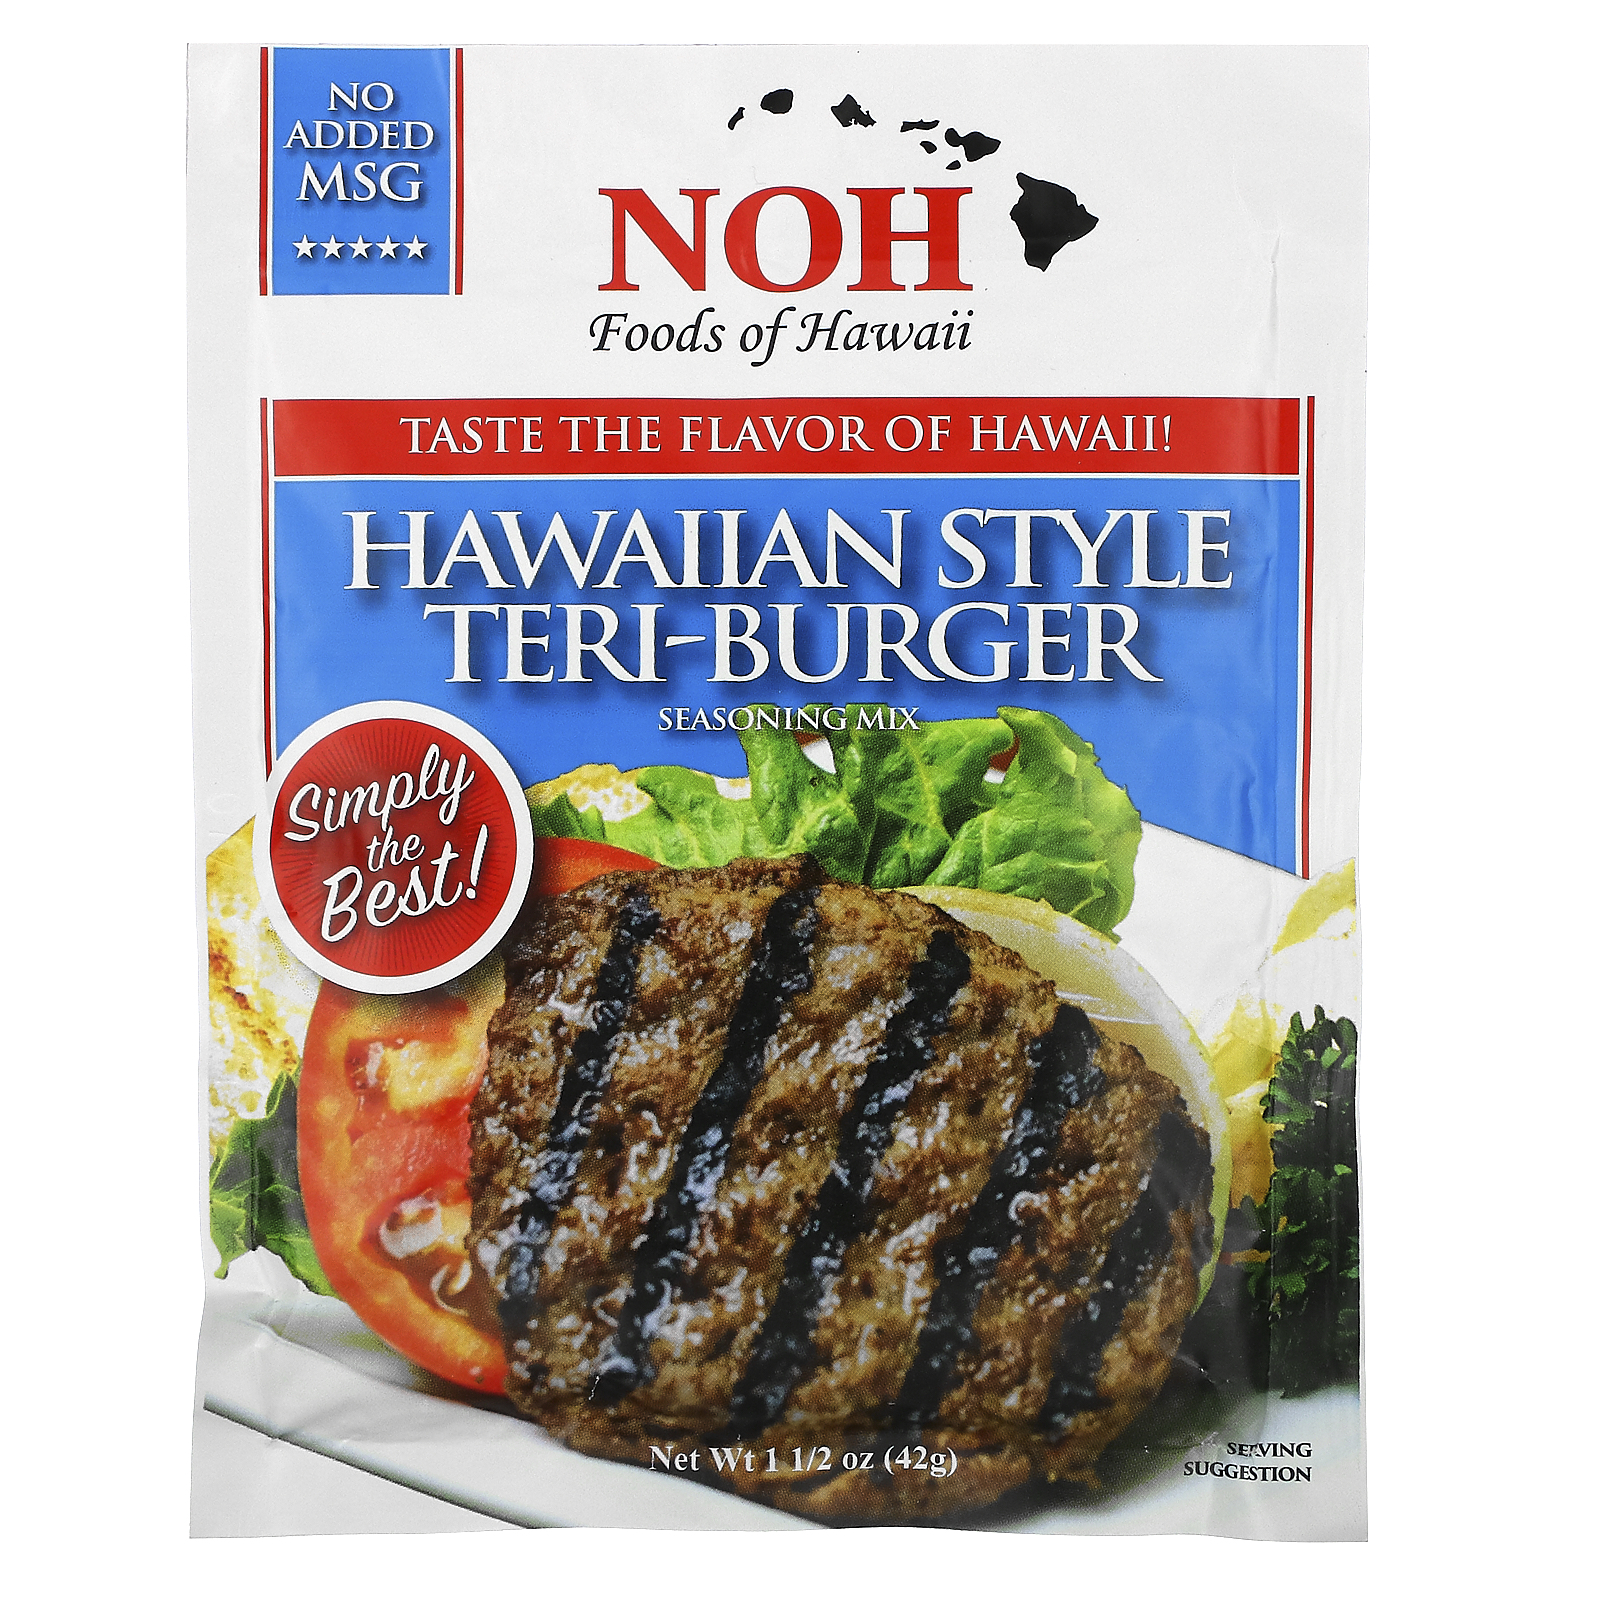 NOH Foods of Hawaii, Hawaiian Style Teri-Burger Seasoning Mix, 1 1/2 oz (42 g)